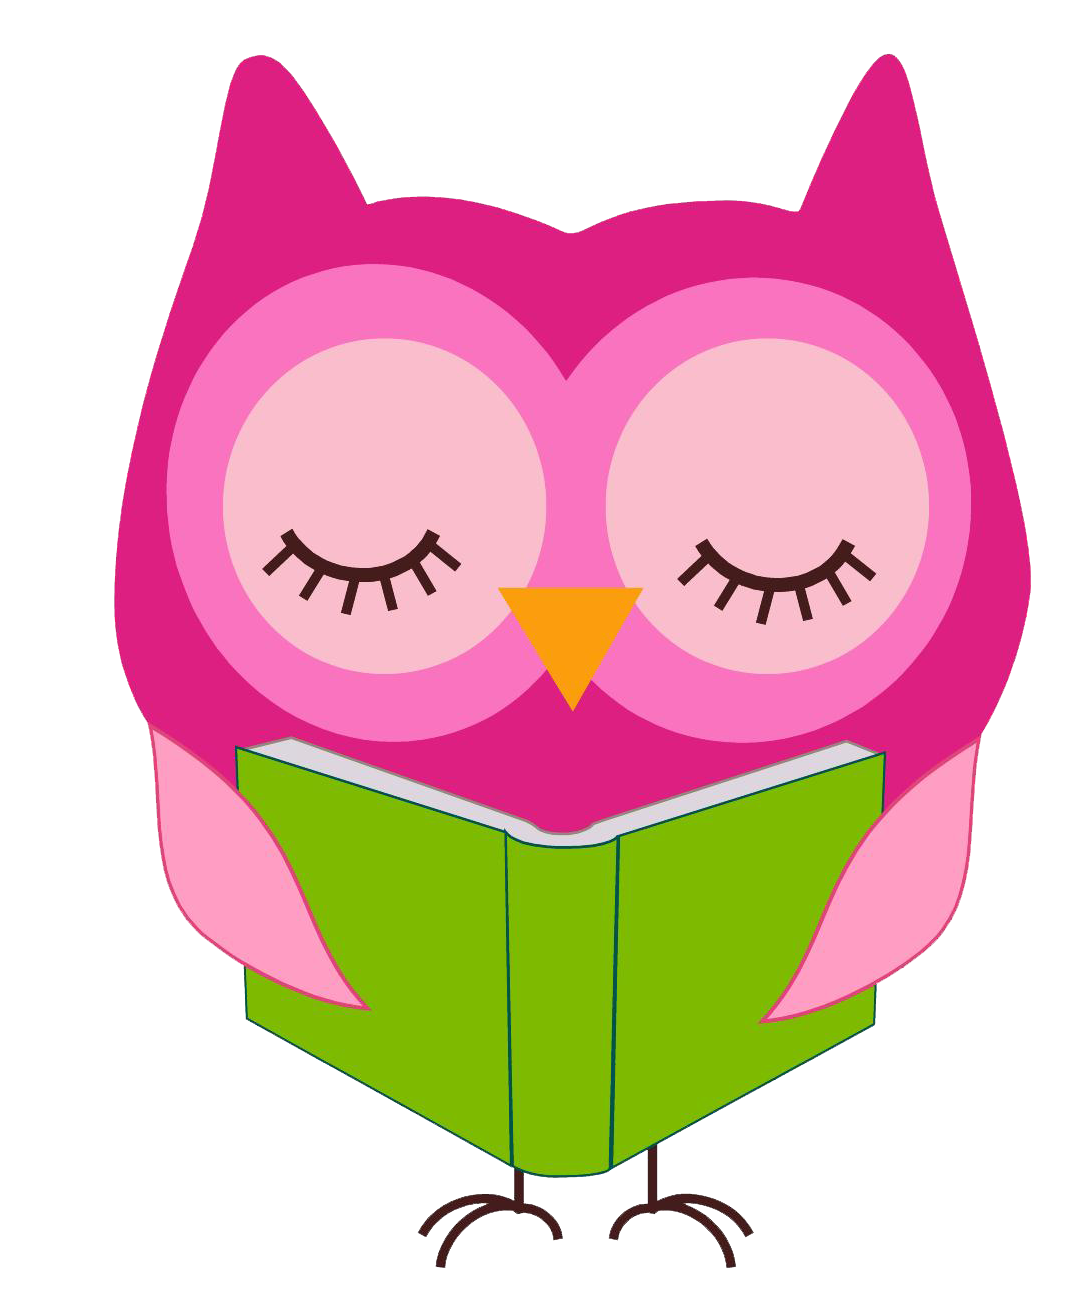 1073x1296 Cute Reading Png Hd Transparent Cute Reading Hd.png Images. Pluspng